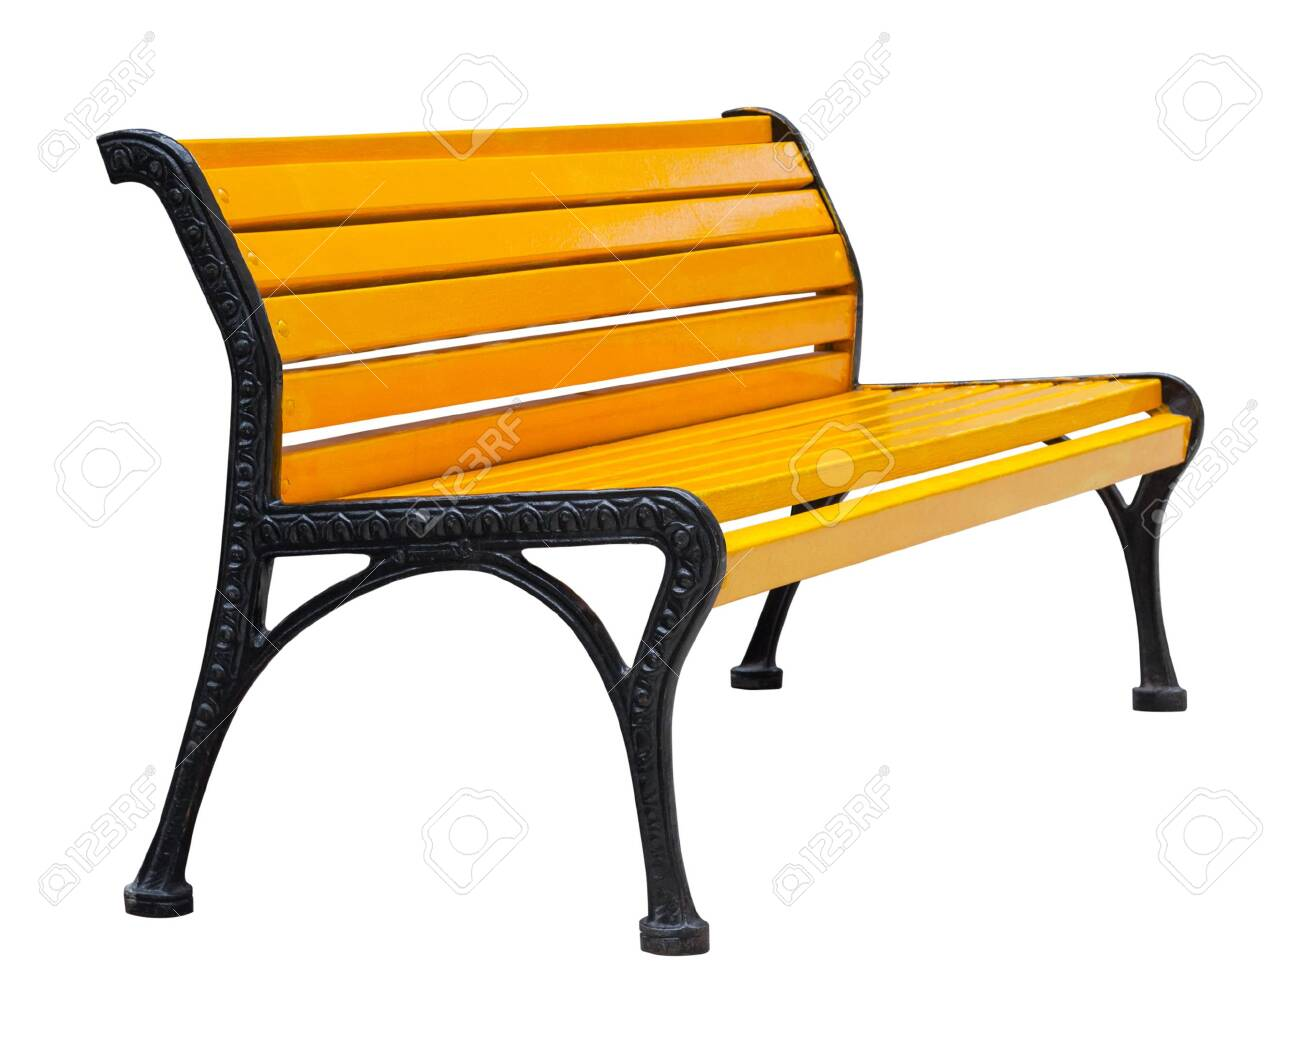 Side View On A Colorful Wooden Bench Painted Orange With Black